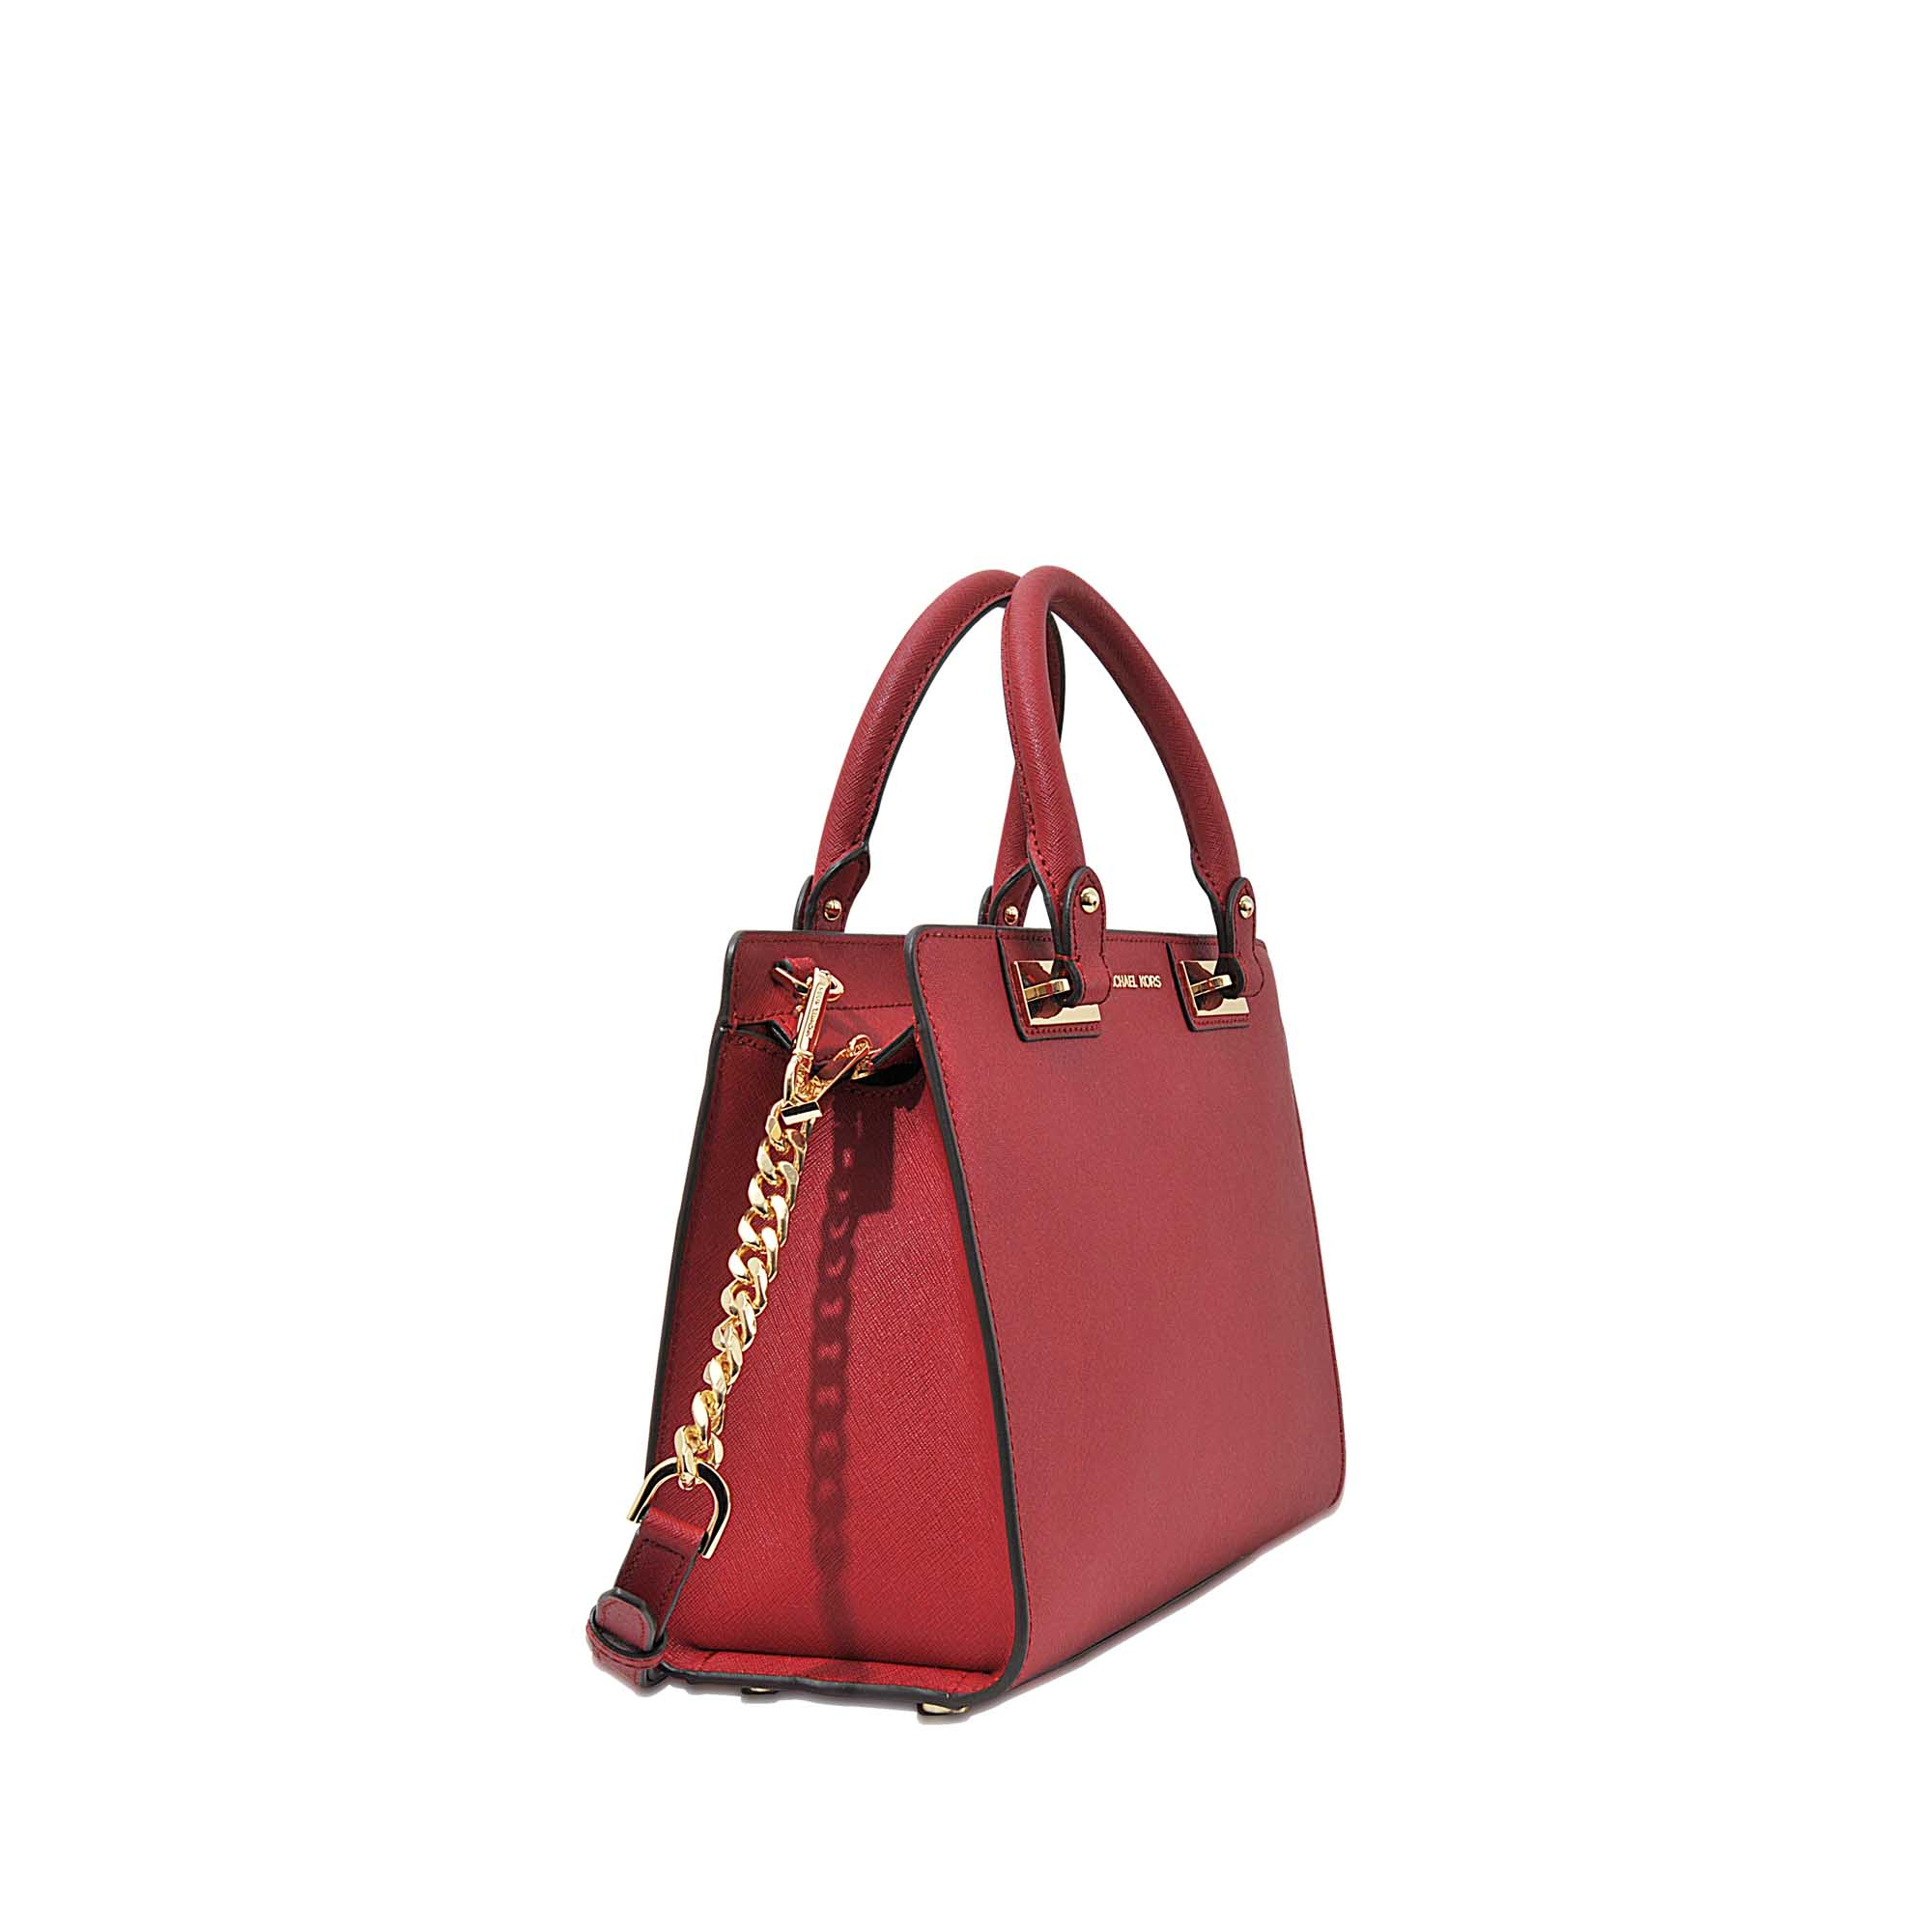 69f1c0c39acf2c ... spain sale 74401 e9719 lyst michael michael kors quinn medium satchel  in red 59628 34542